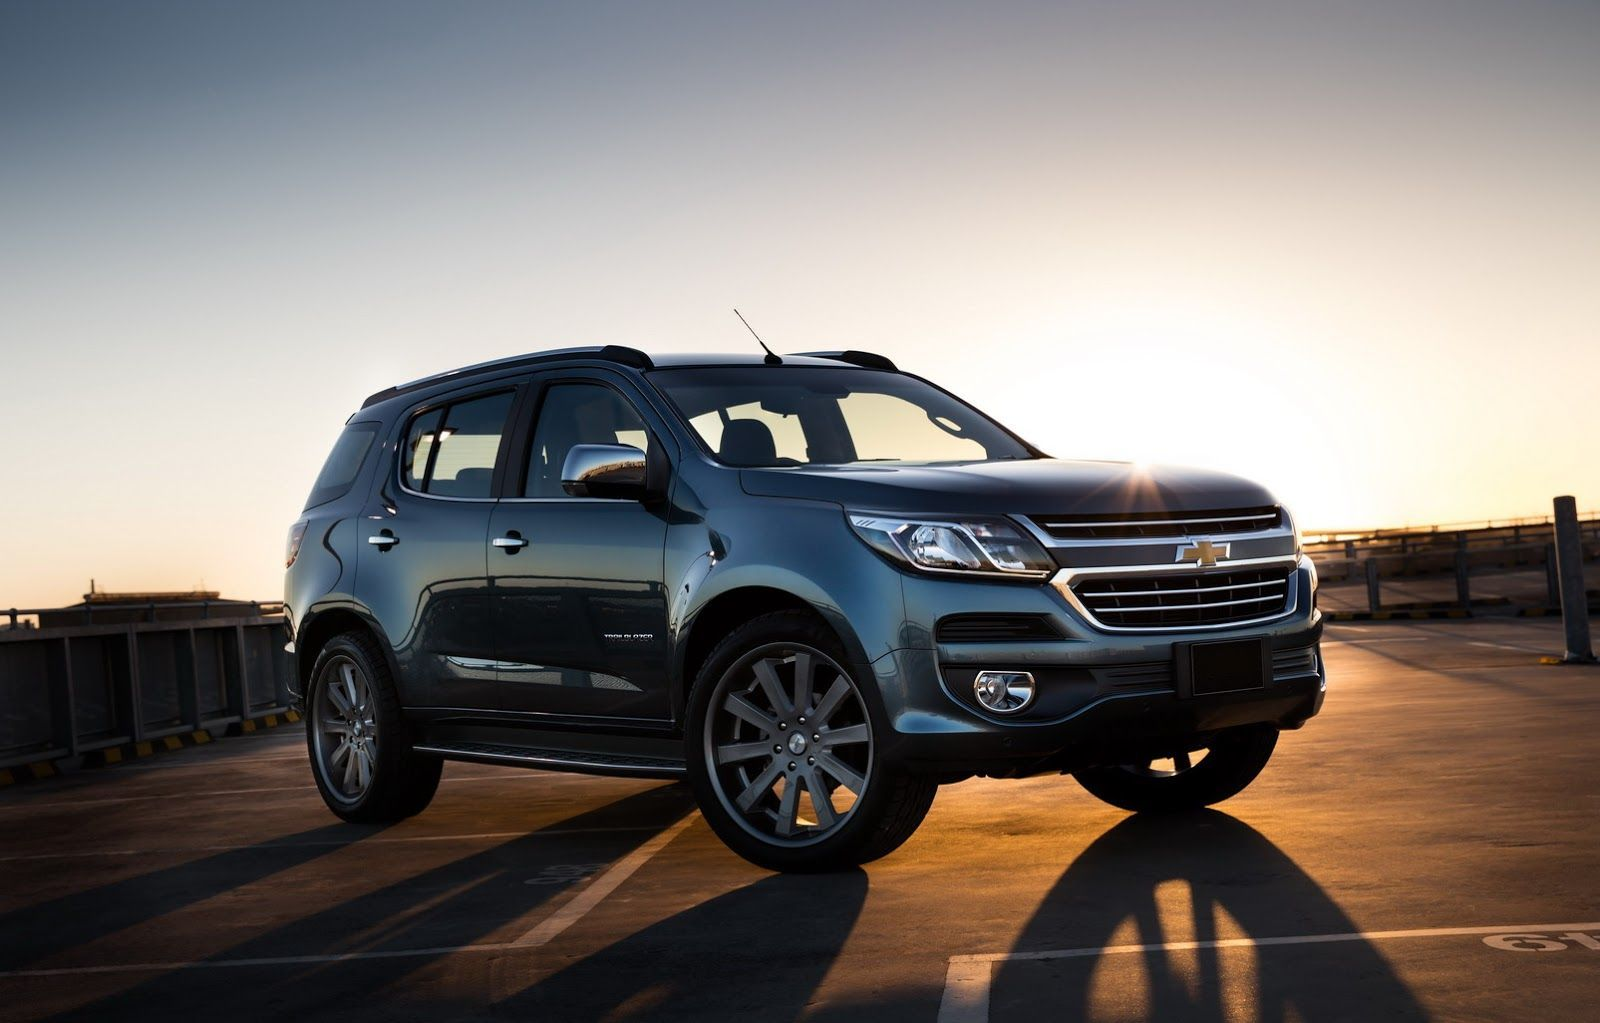 Chevrolet trailblazer l 4x2 at with a p98 000 all in downpayment promo from chevrolet north edsa autodeal com ph chevrolet trailblazer pinterest